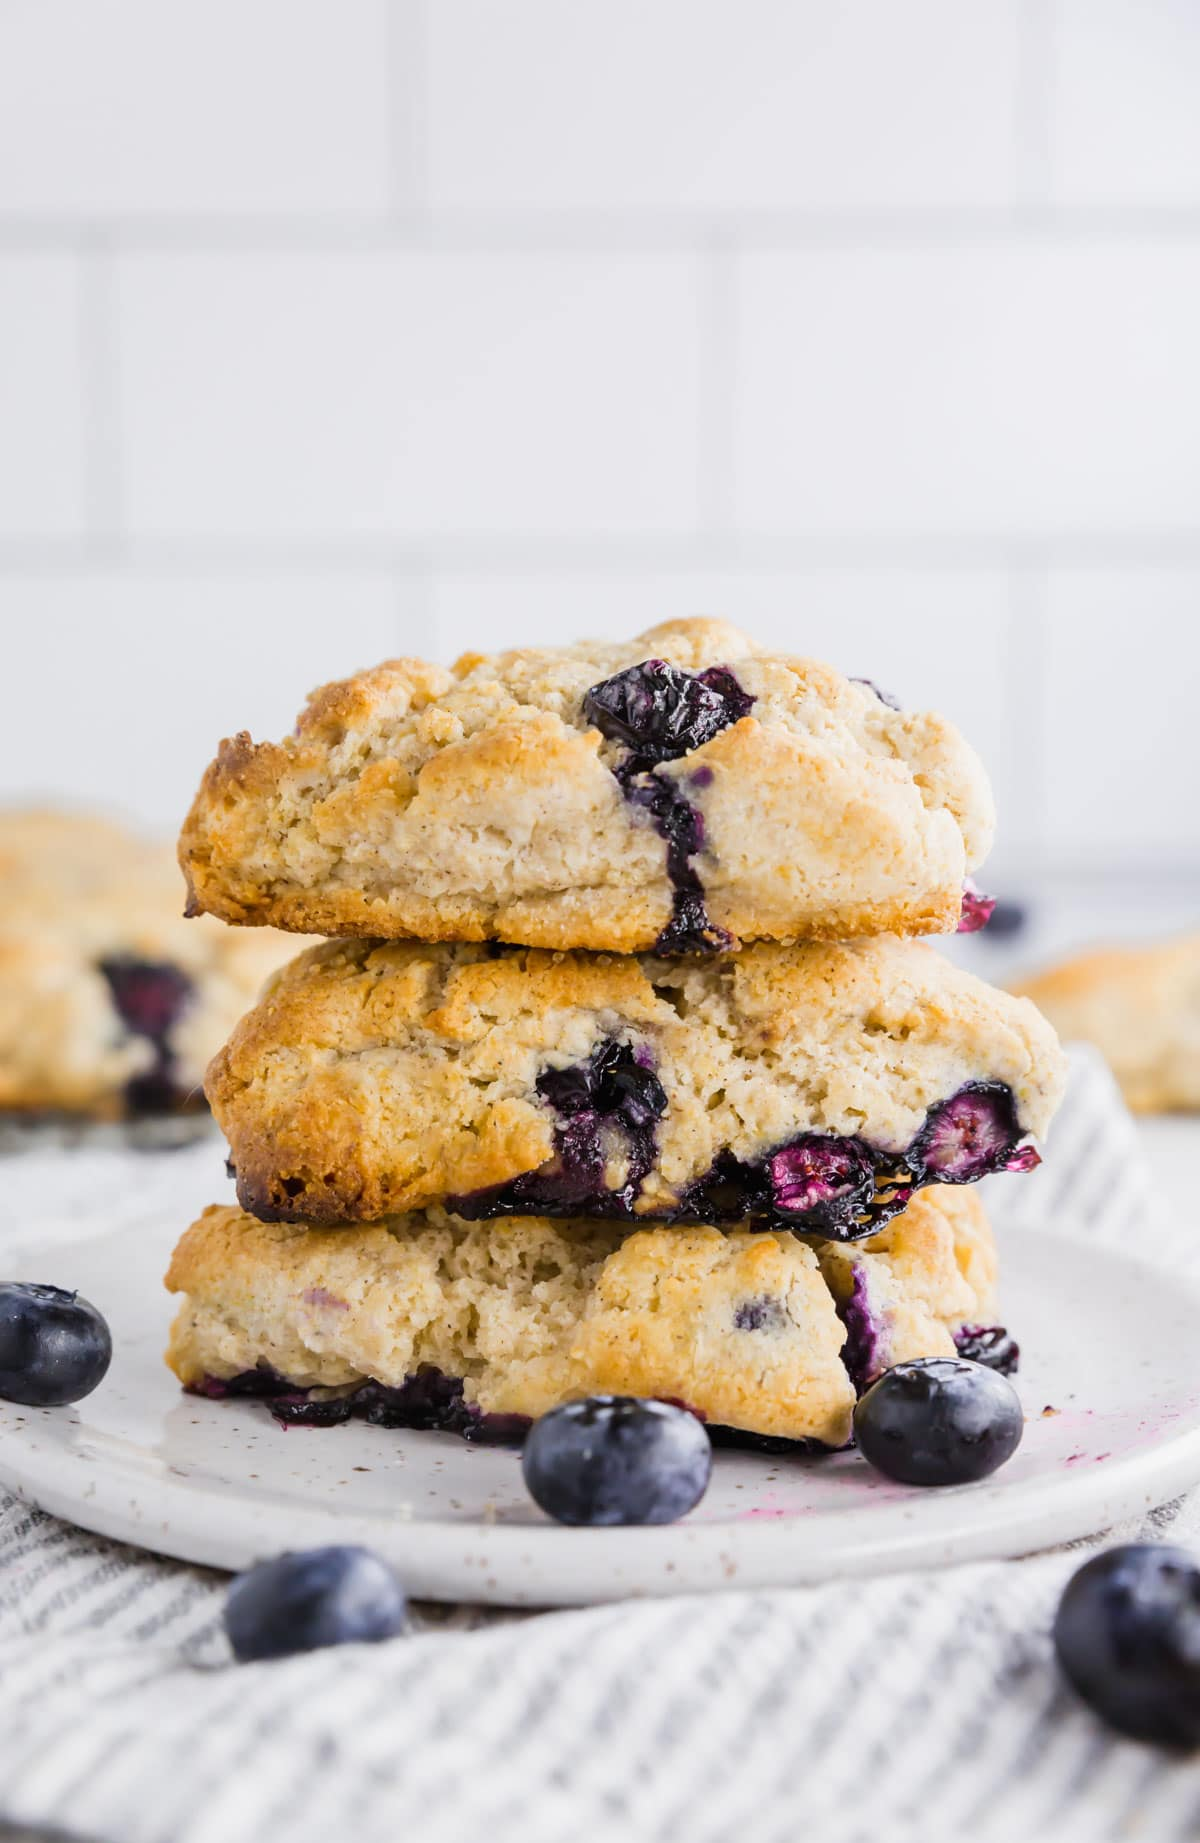 A stack of three gluten-free blueberry scones on a small plate.